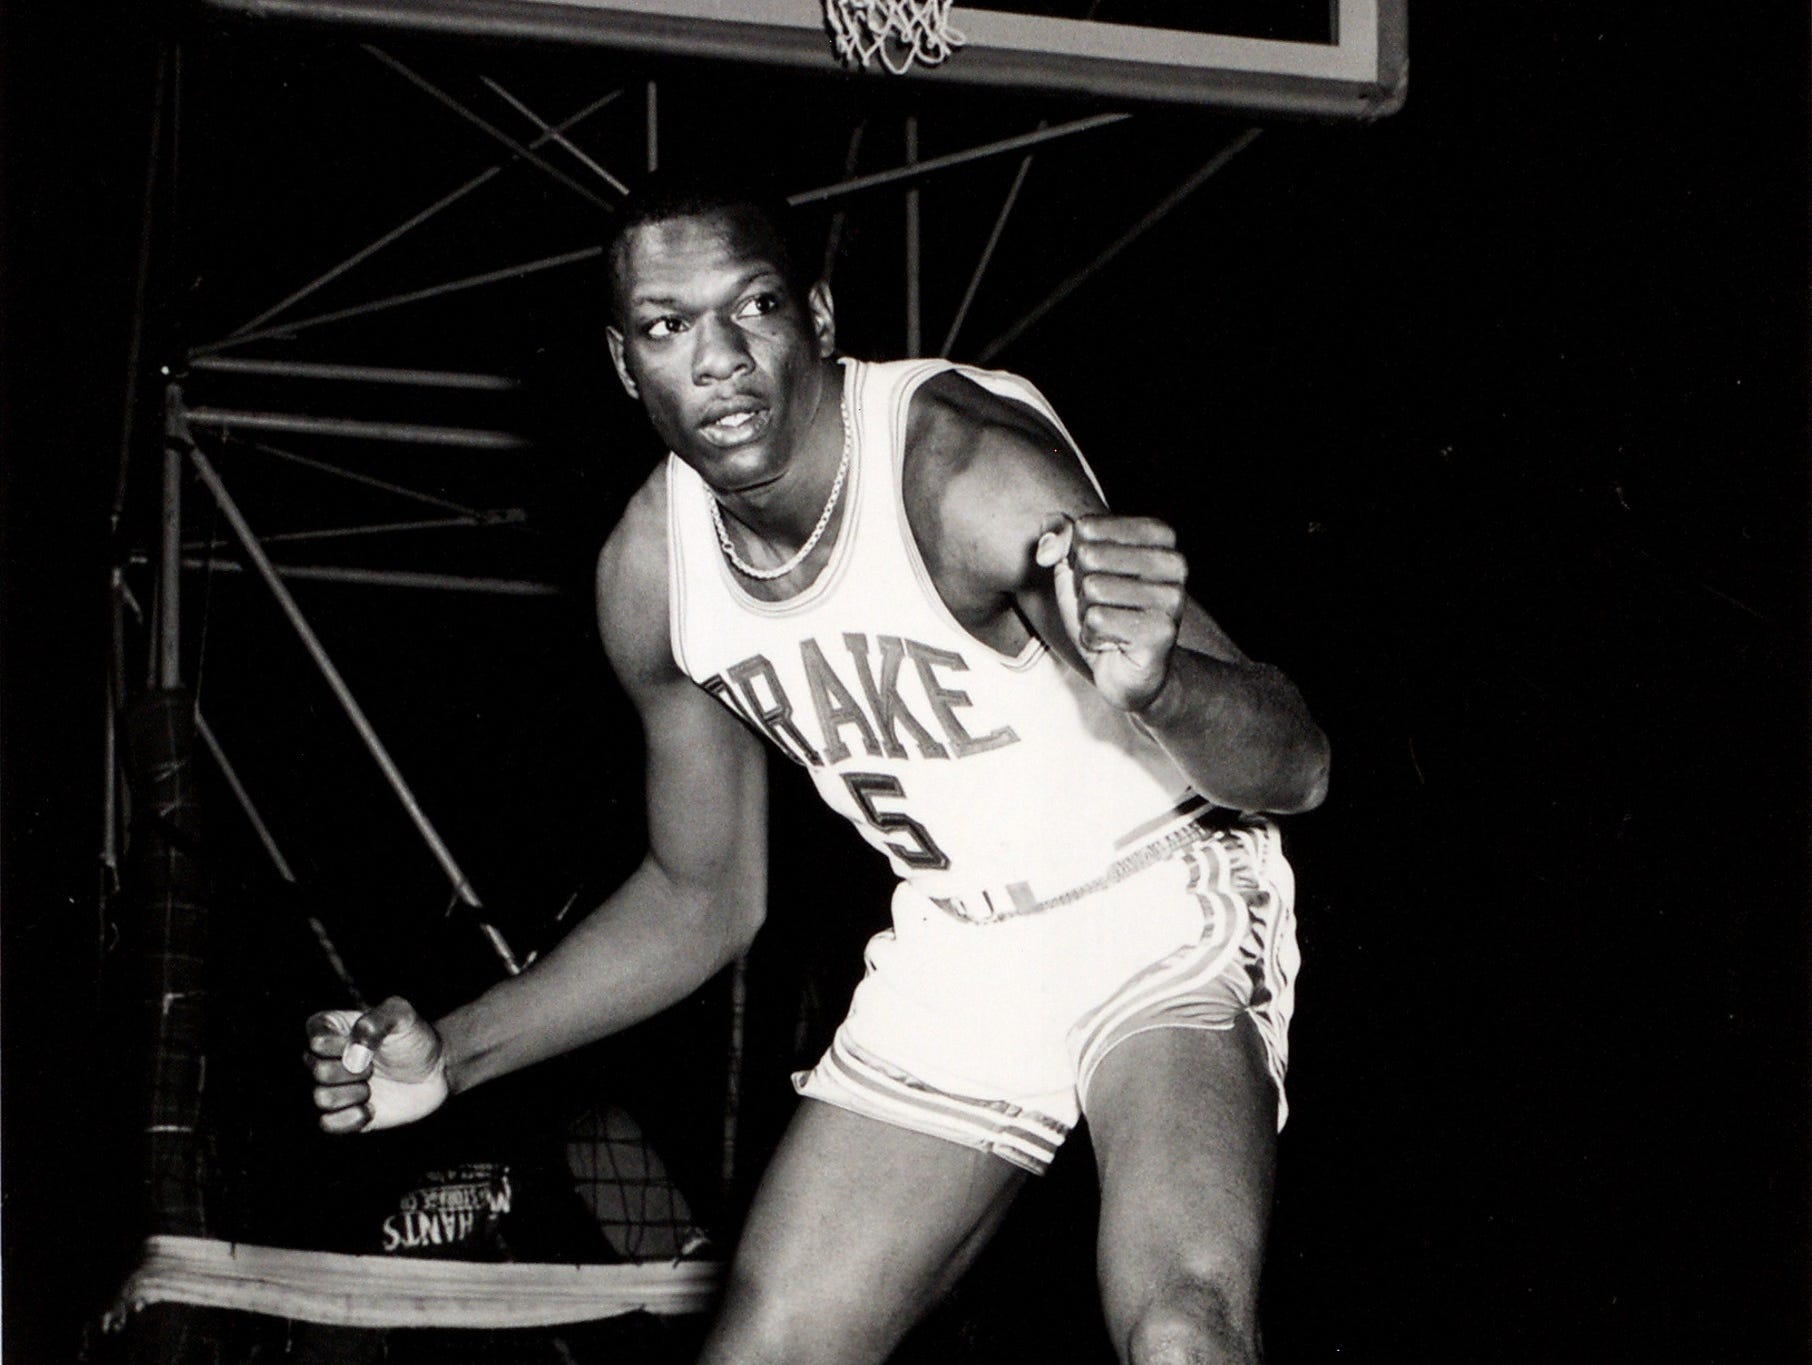 Dolph Pulliam was a 6-4 senior forward on the 1968-69 Drake men's basketball team that made it to the Final Four. He averaged 13.2 points and 7.7 rebounds that season.